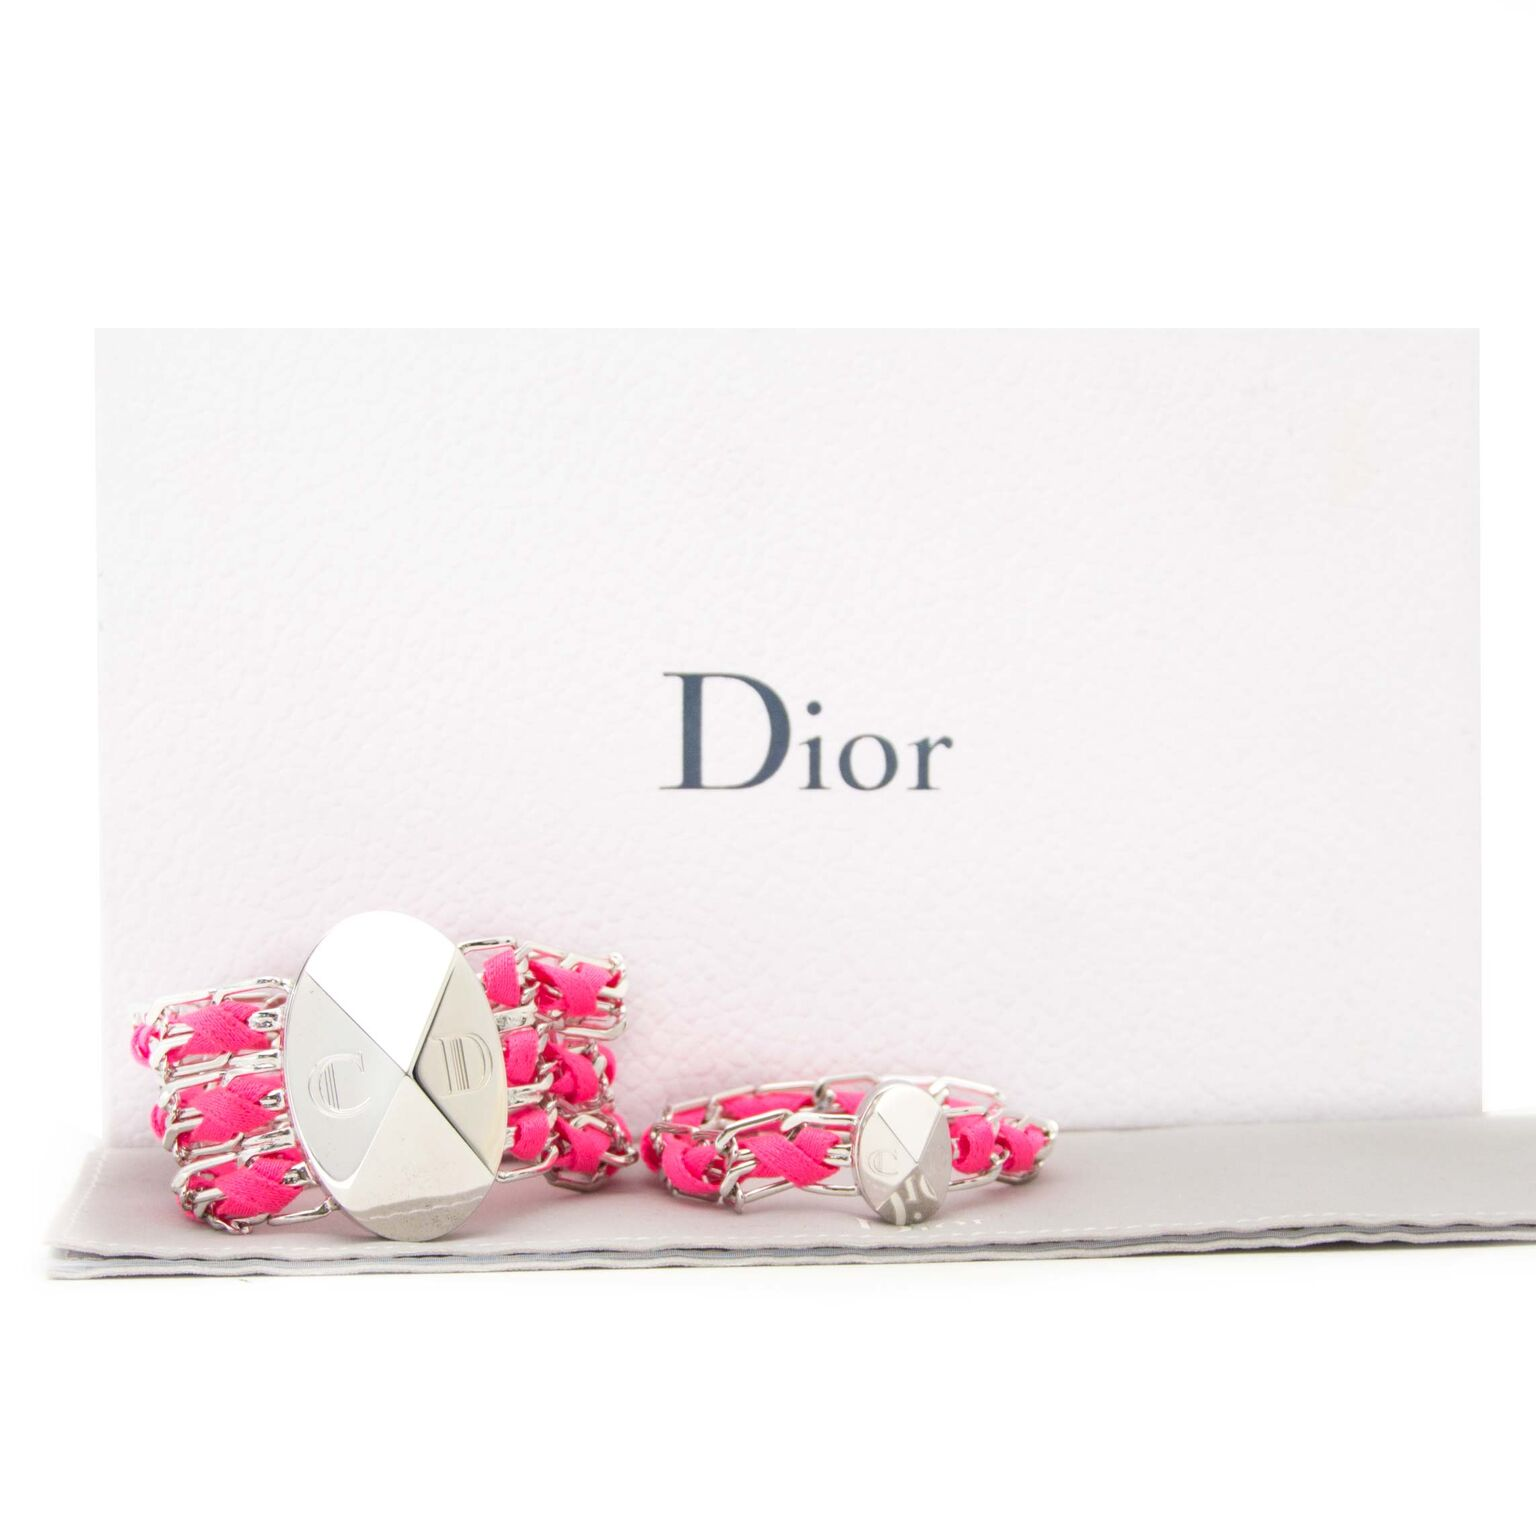 Looking for a gift? Buy these Christian Dior silver bracelets at our safe online webshop labellov.com. Our showroom is located in Antwerp.